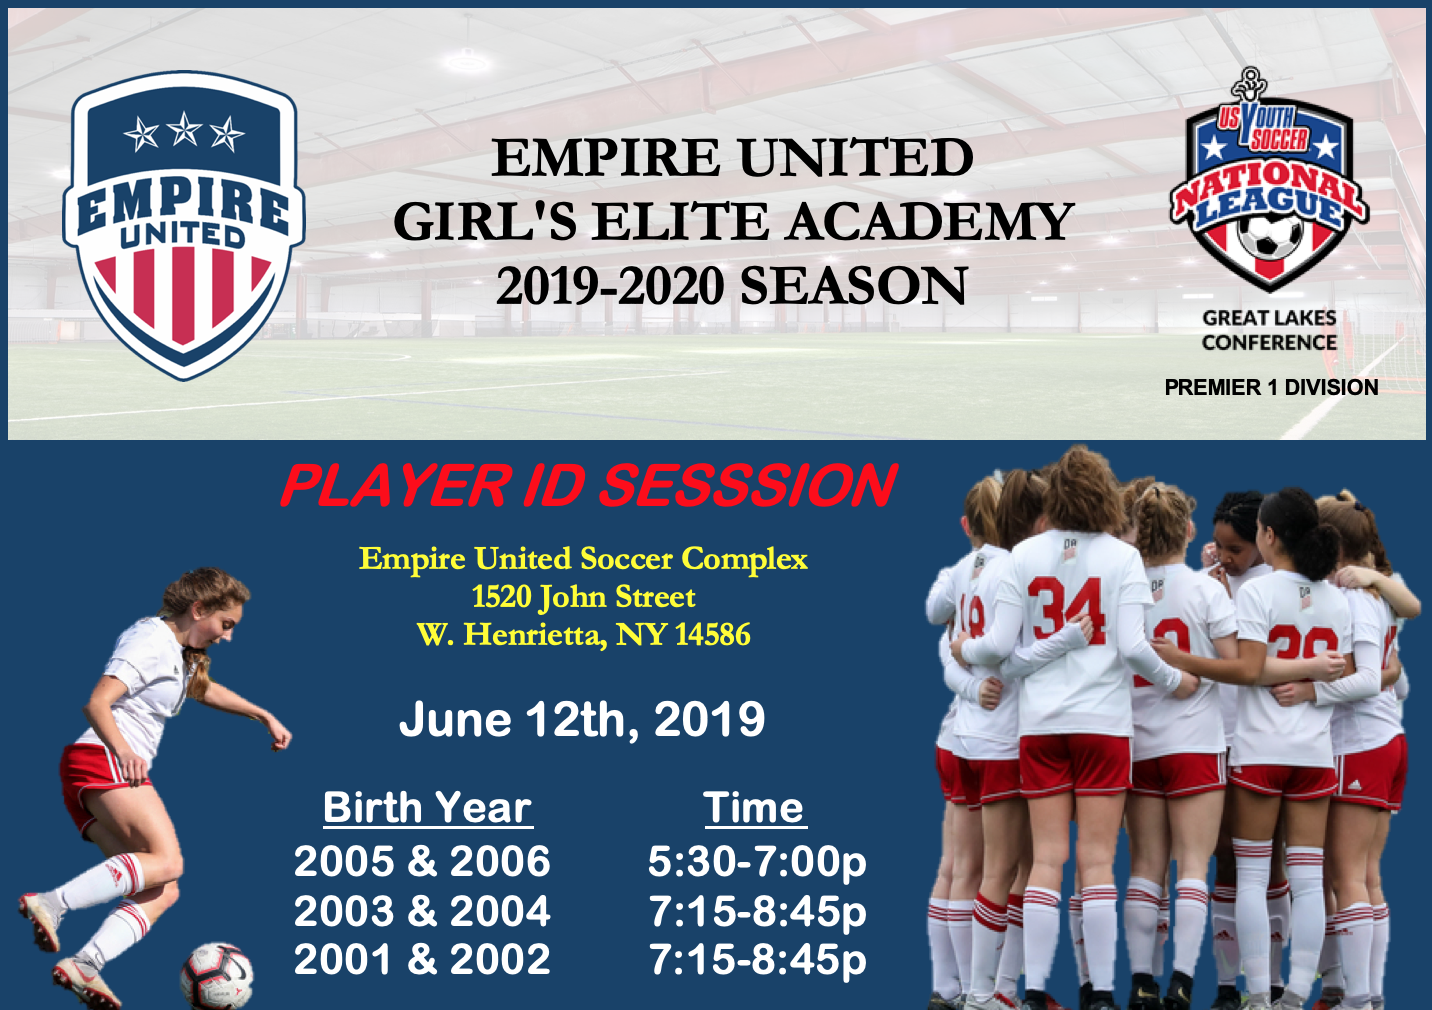 2019-2020 Empire United Girls Elite Academy Tryout Info